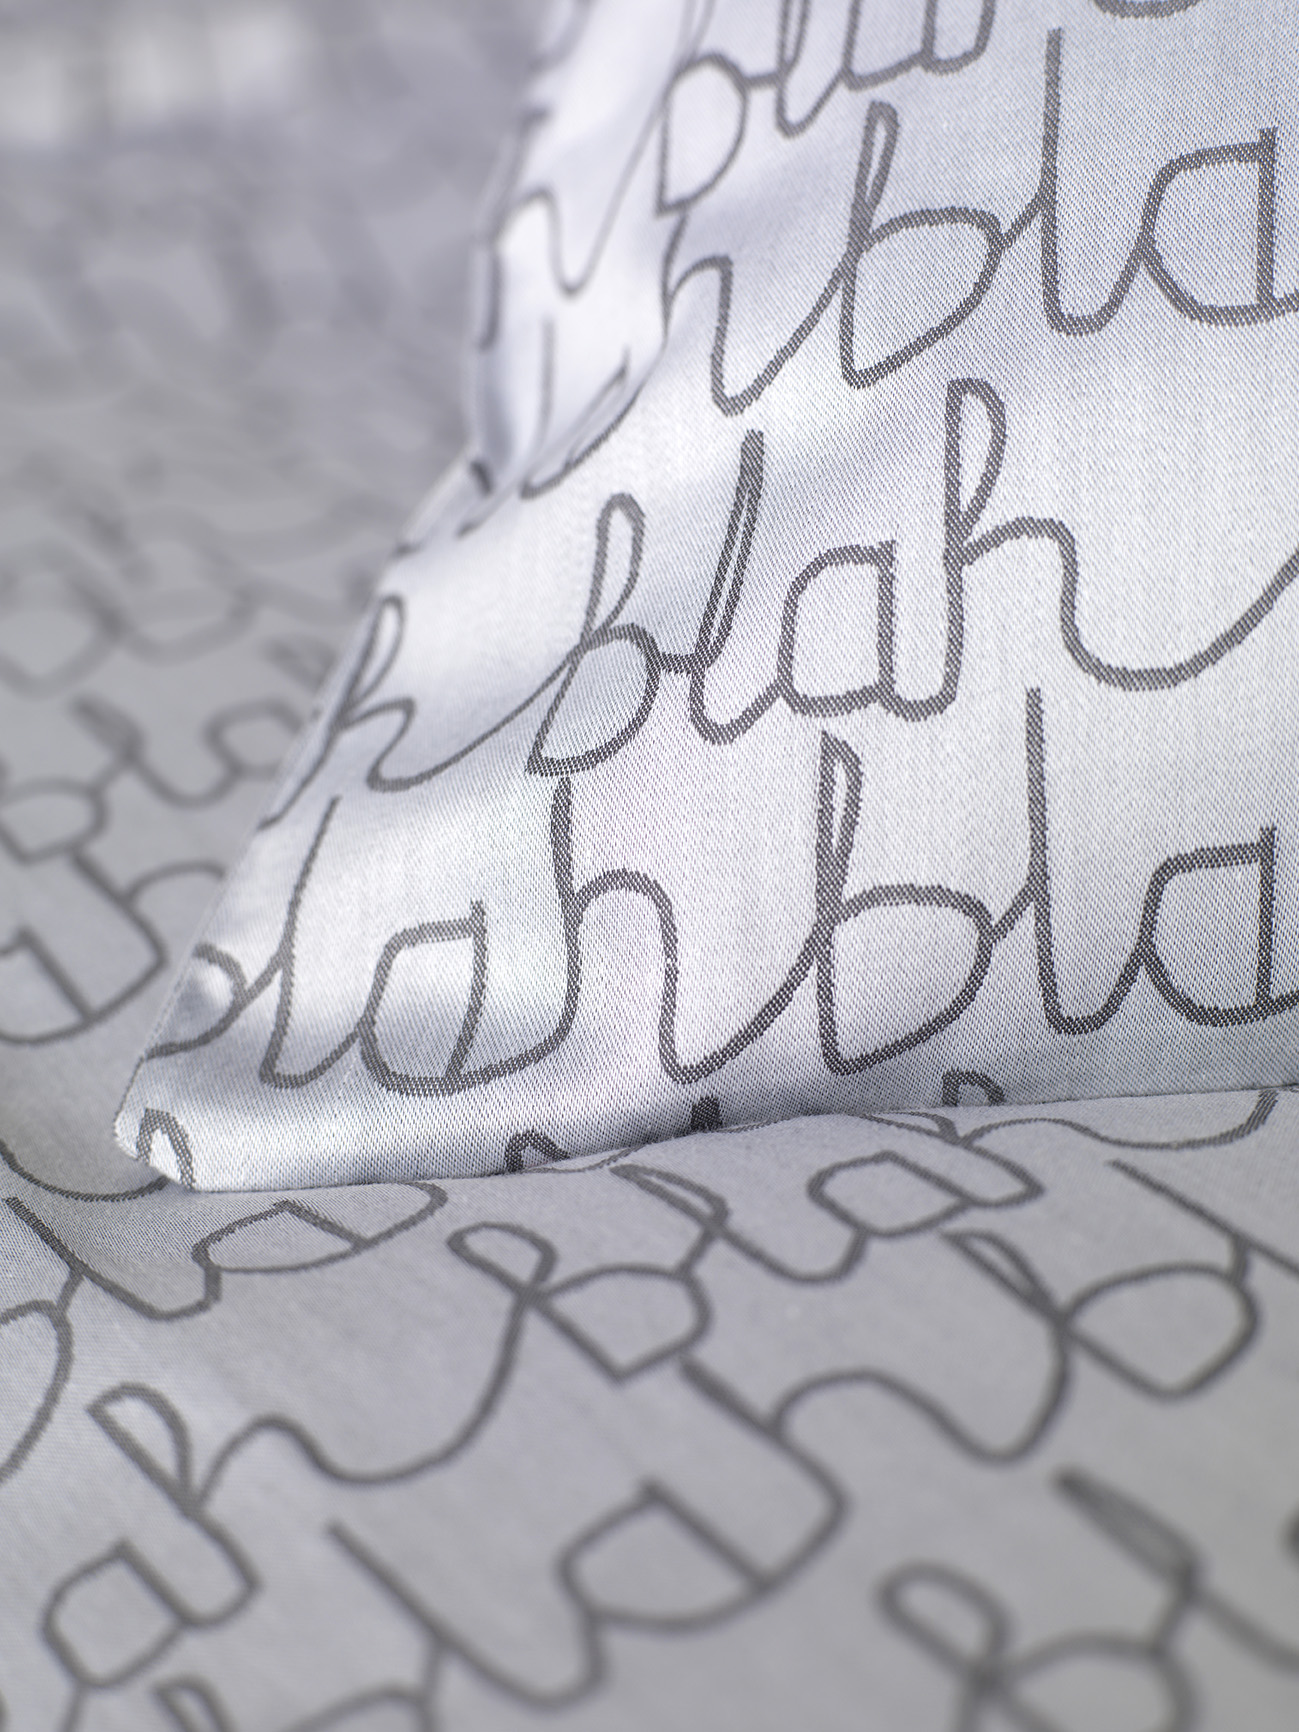 Donna Wilson Collaboration for Secret Linen Store, Blah Blah Bed Linen Corner, double duvet £75, pillowcase £15